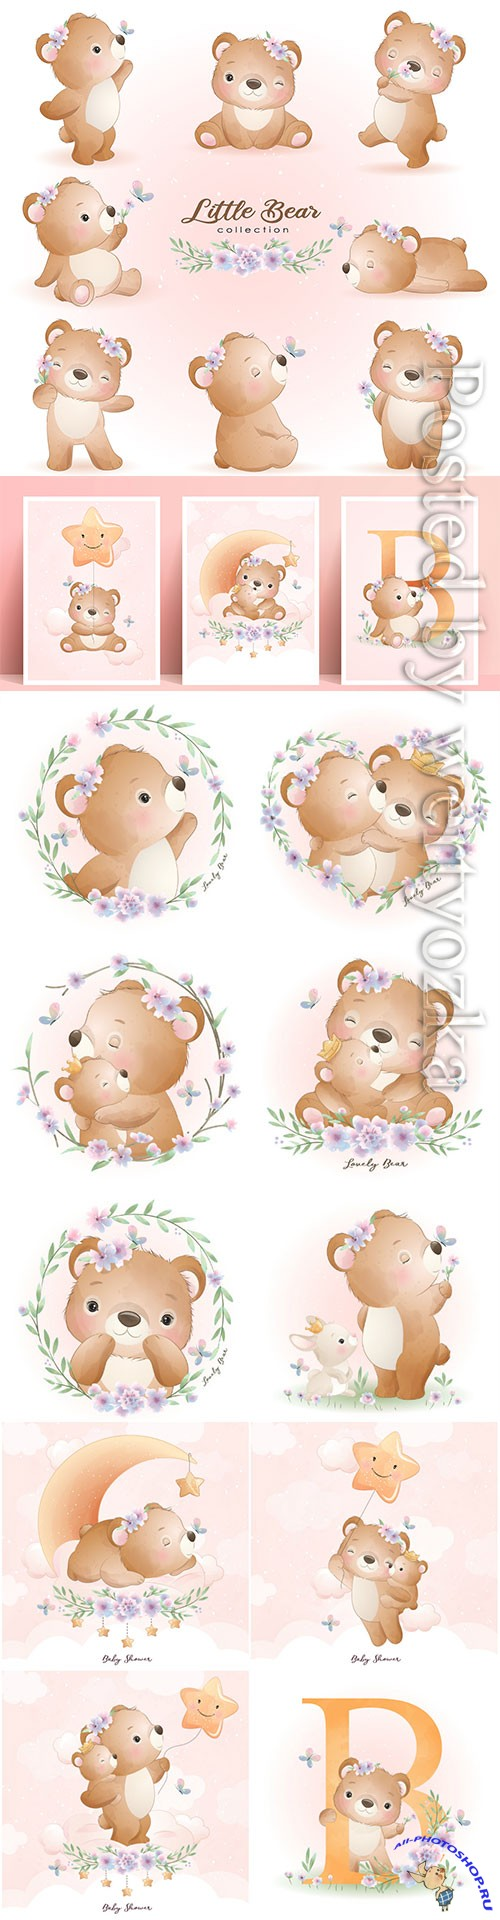 Cute doodle bear poses with floral set illustration premium vector